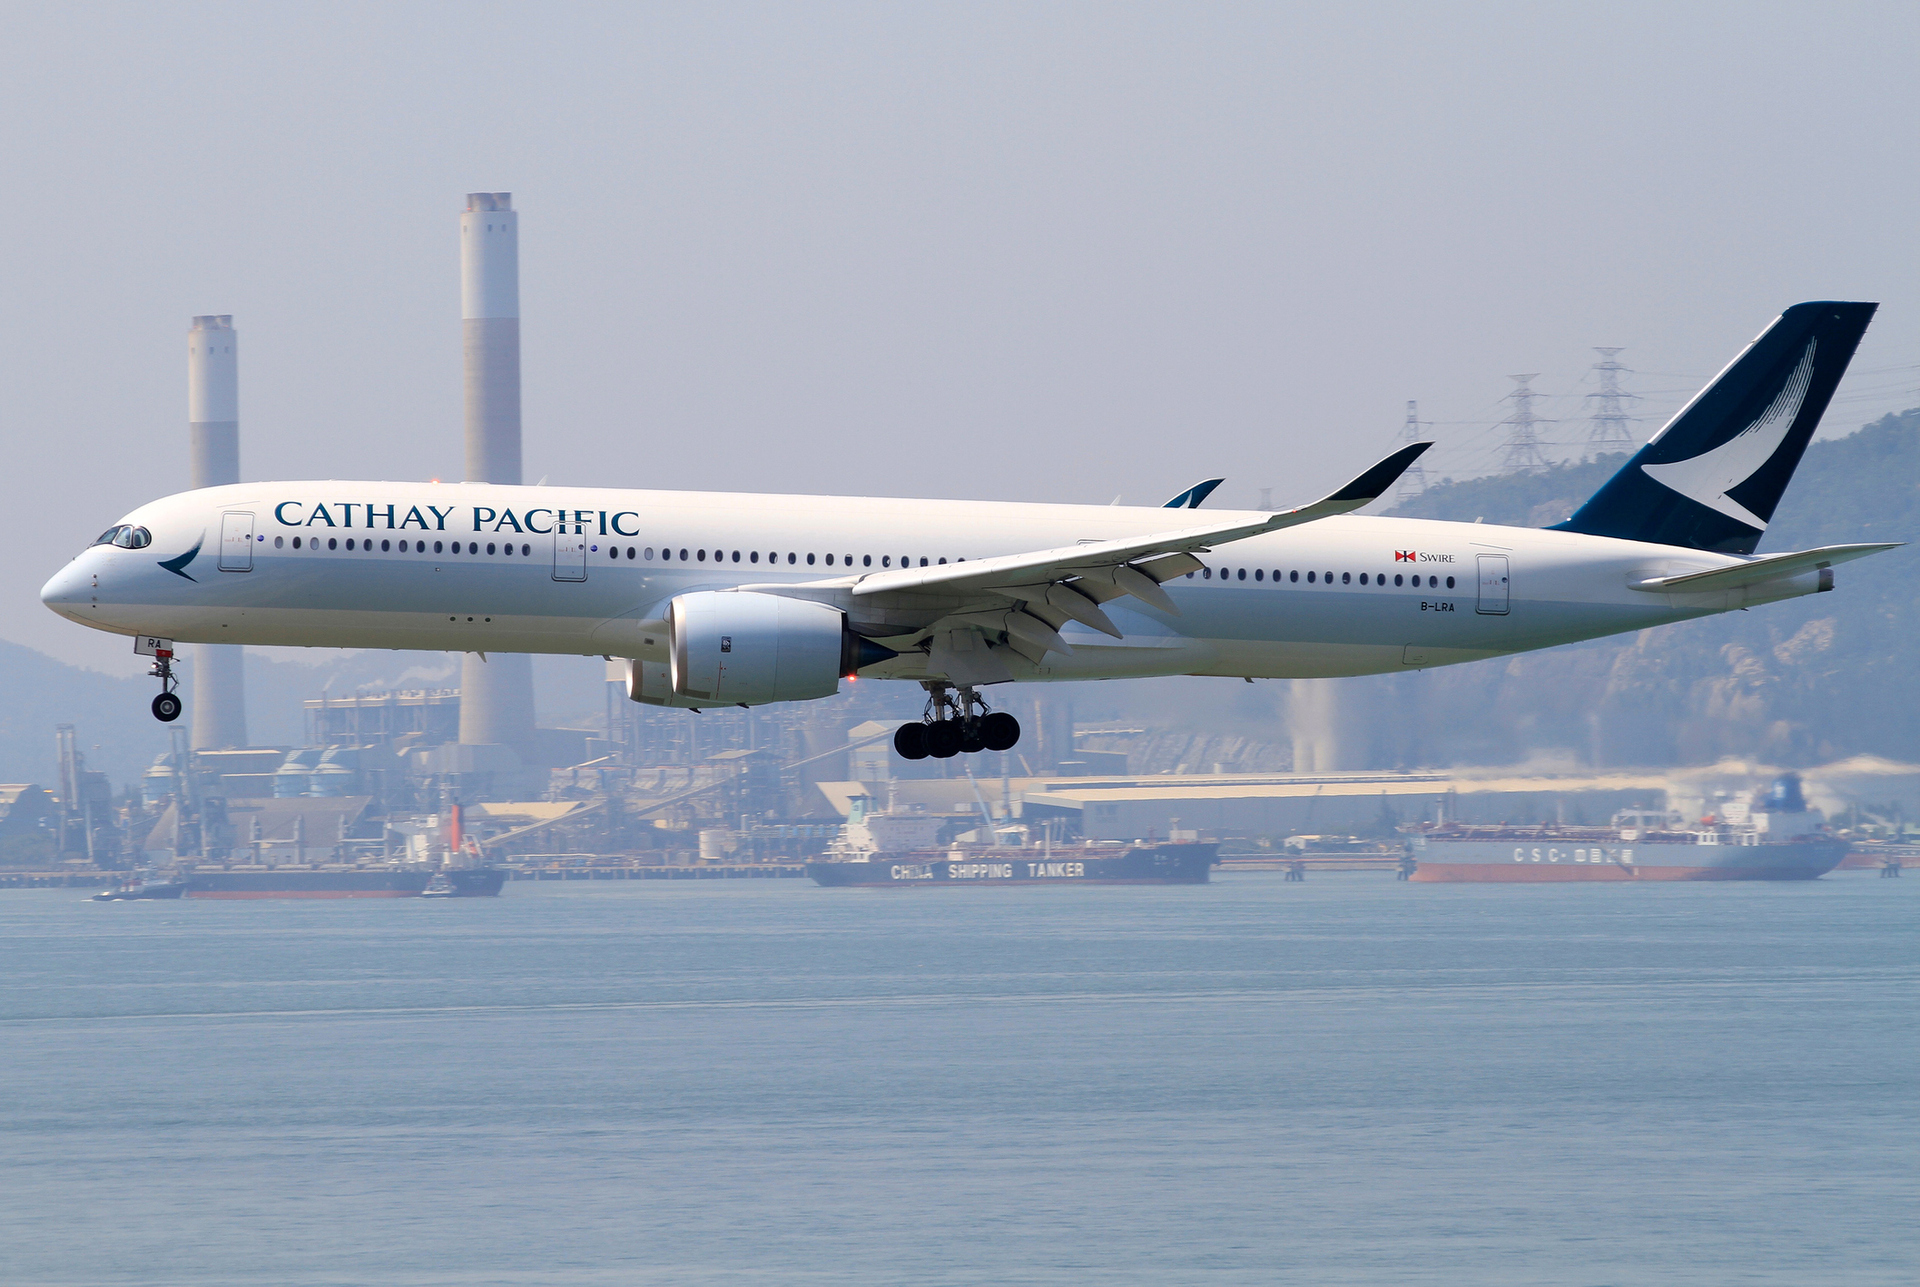 Cathay Pacific pilot 'incapacitated' over South China Sea, shows AAIA report